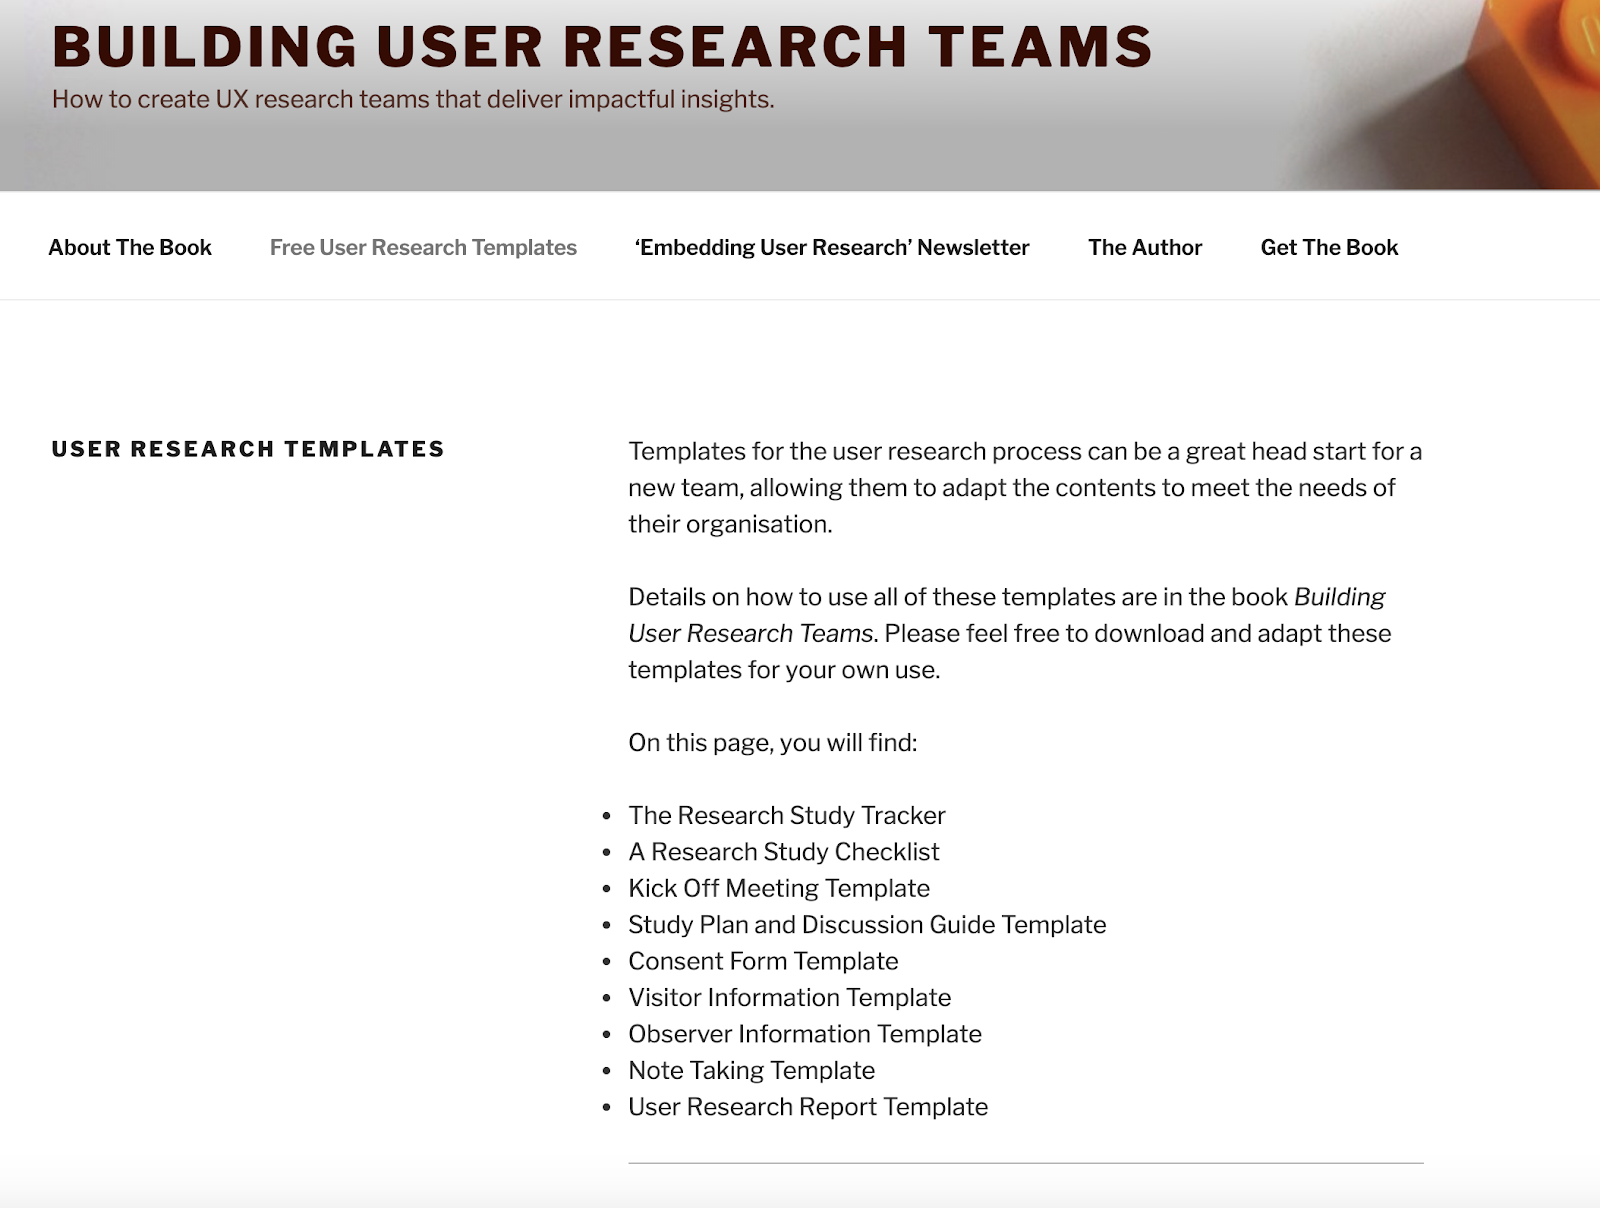 An image of the website 'Building User Research Teams.com'